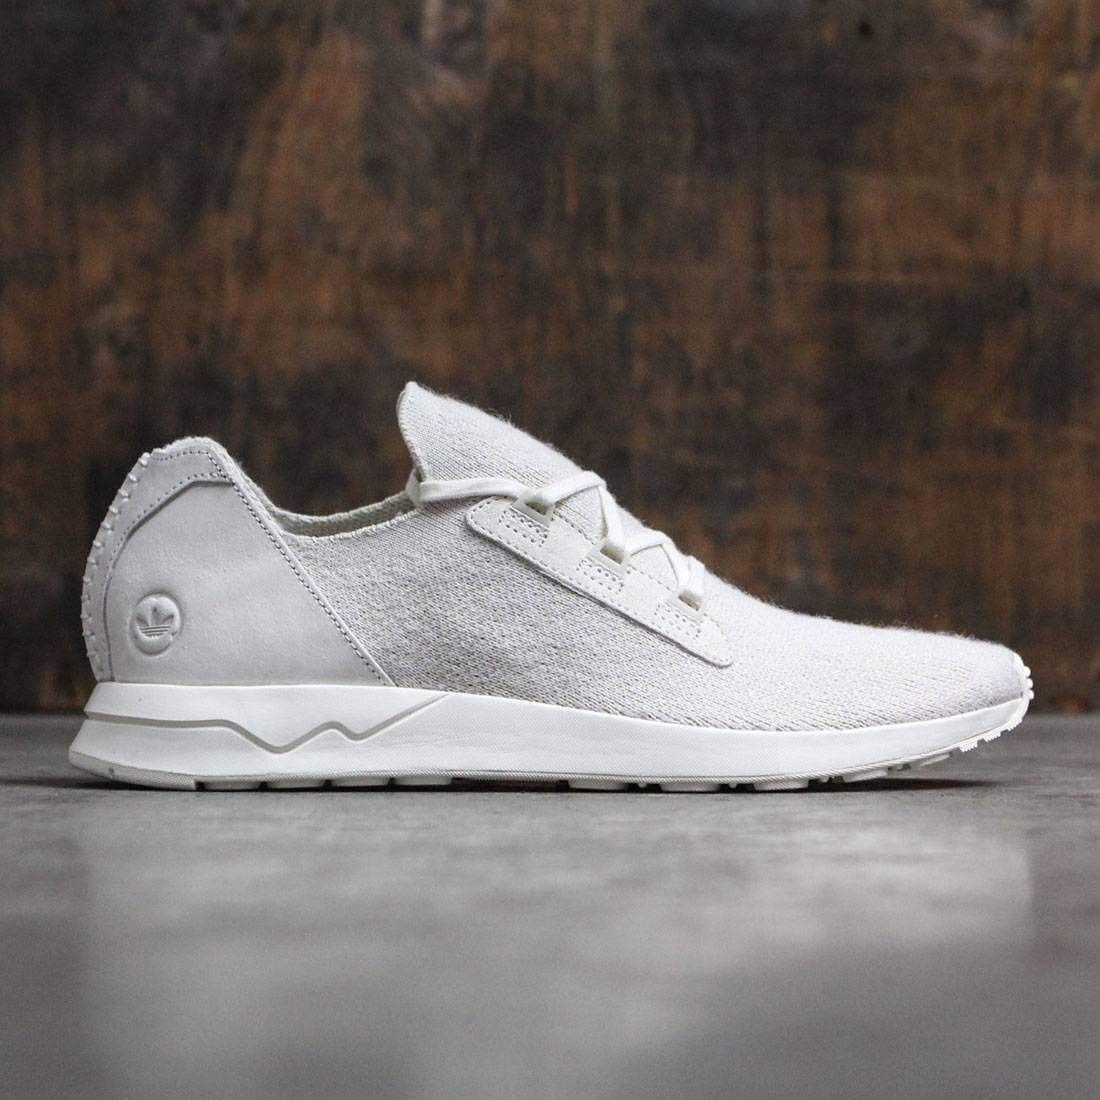 on sale 63bce 873a3 Adidas Consortium x Wings And Horns Men ZX Flux Primeknit (white / off  white)